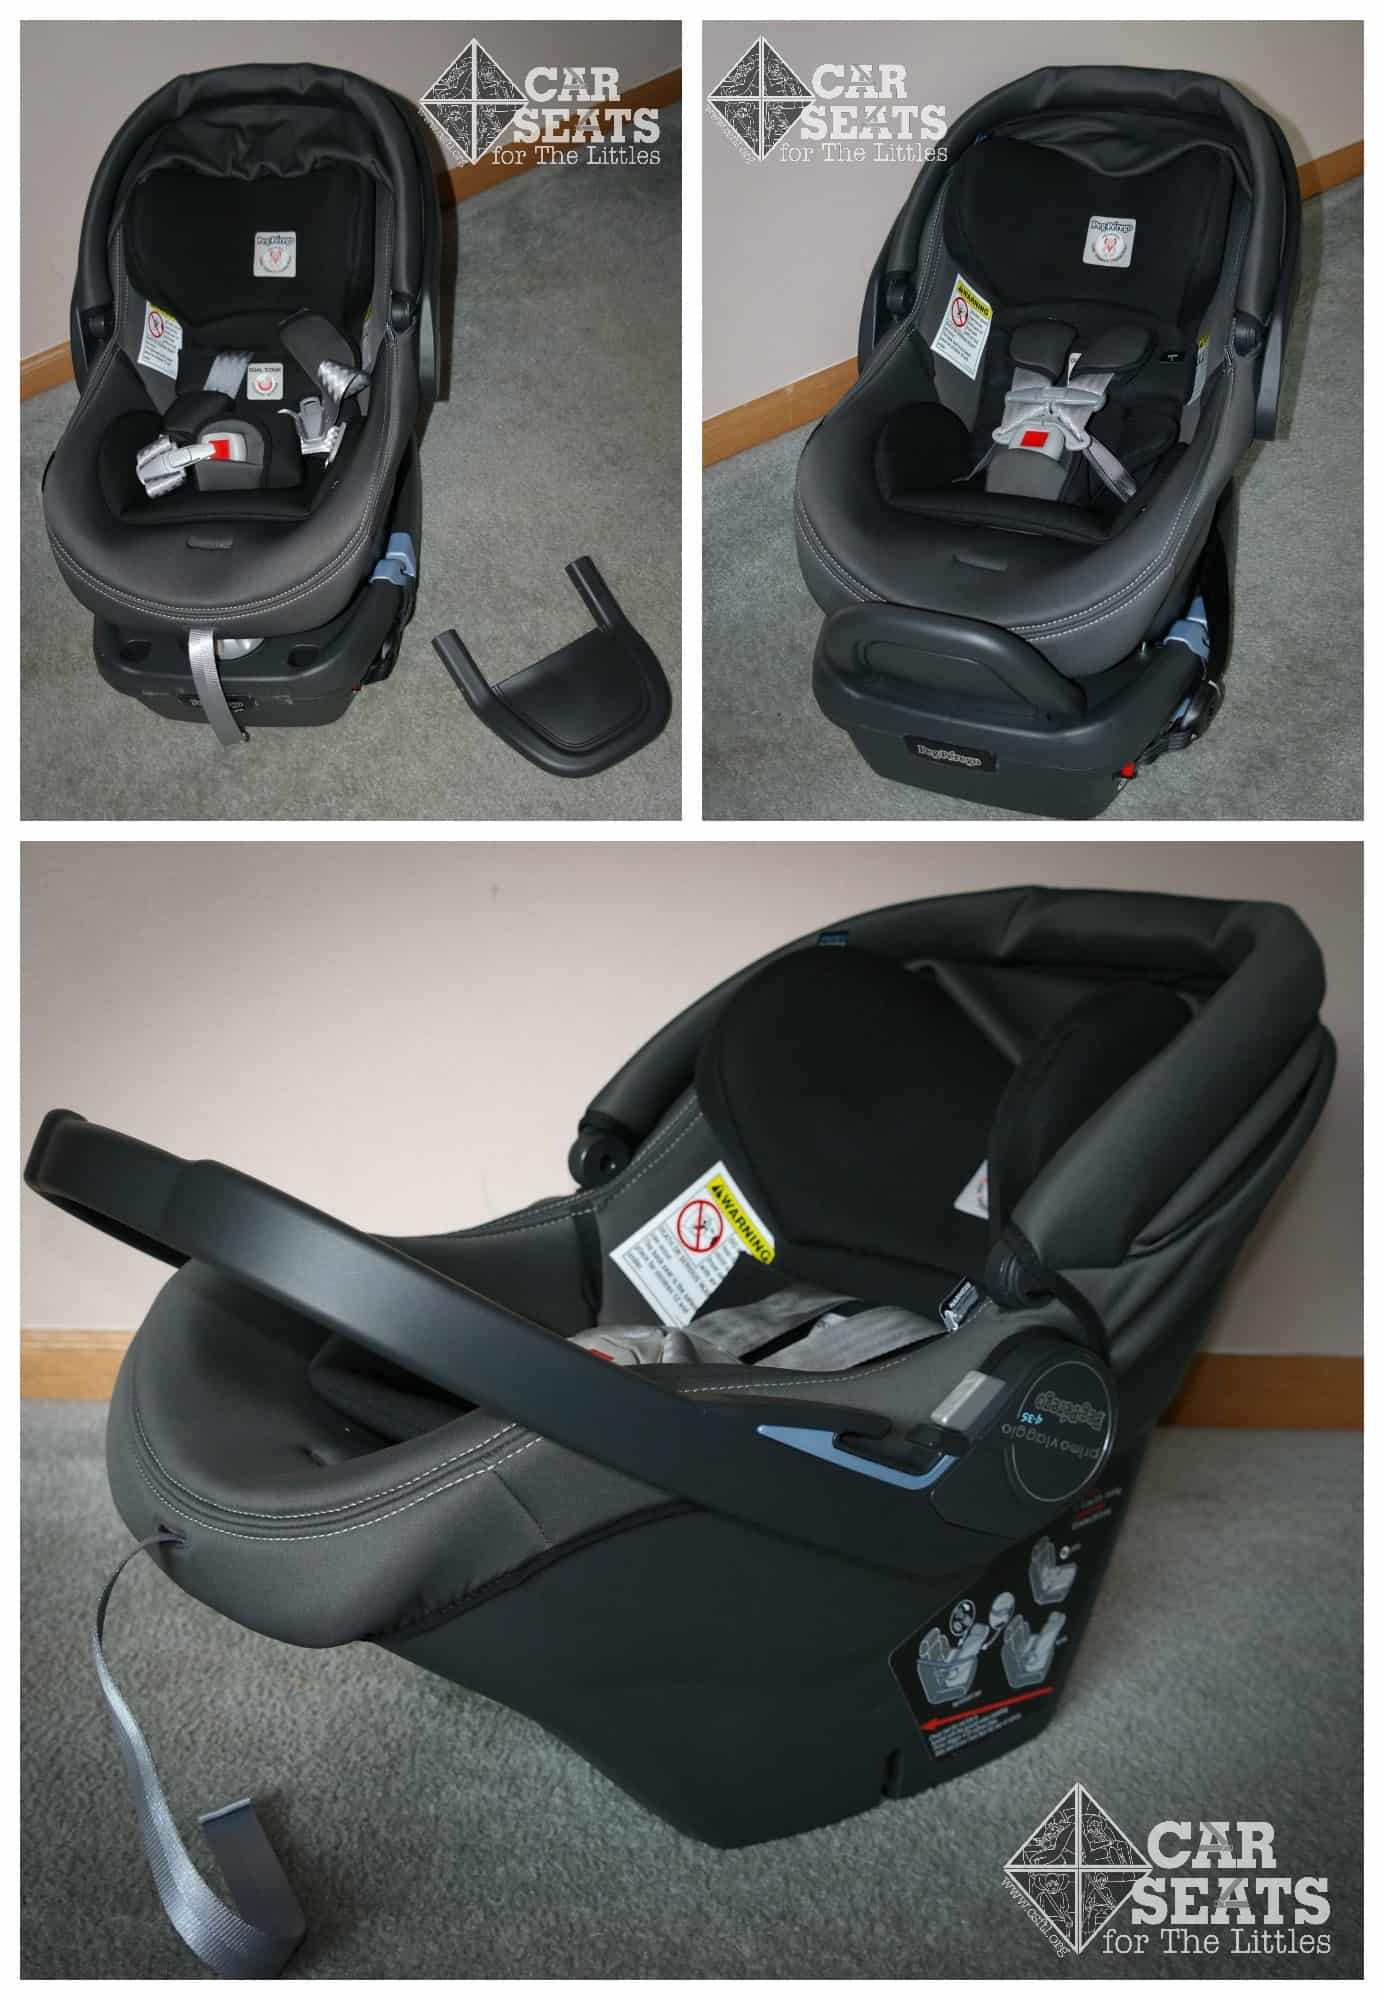 Rear Facing Car Seat How To Install Peg Perego Primo Viaggio 4 35 Review Car Seats For The